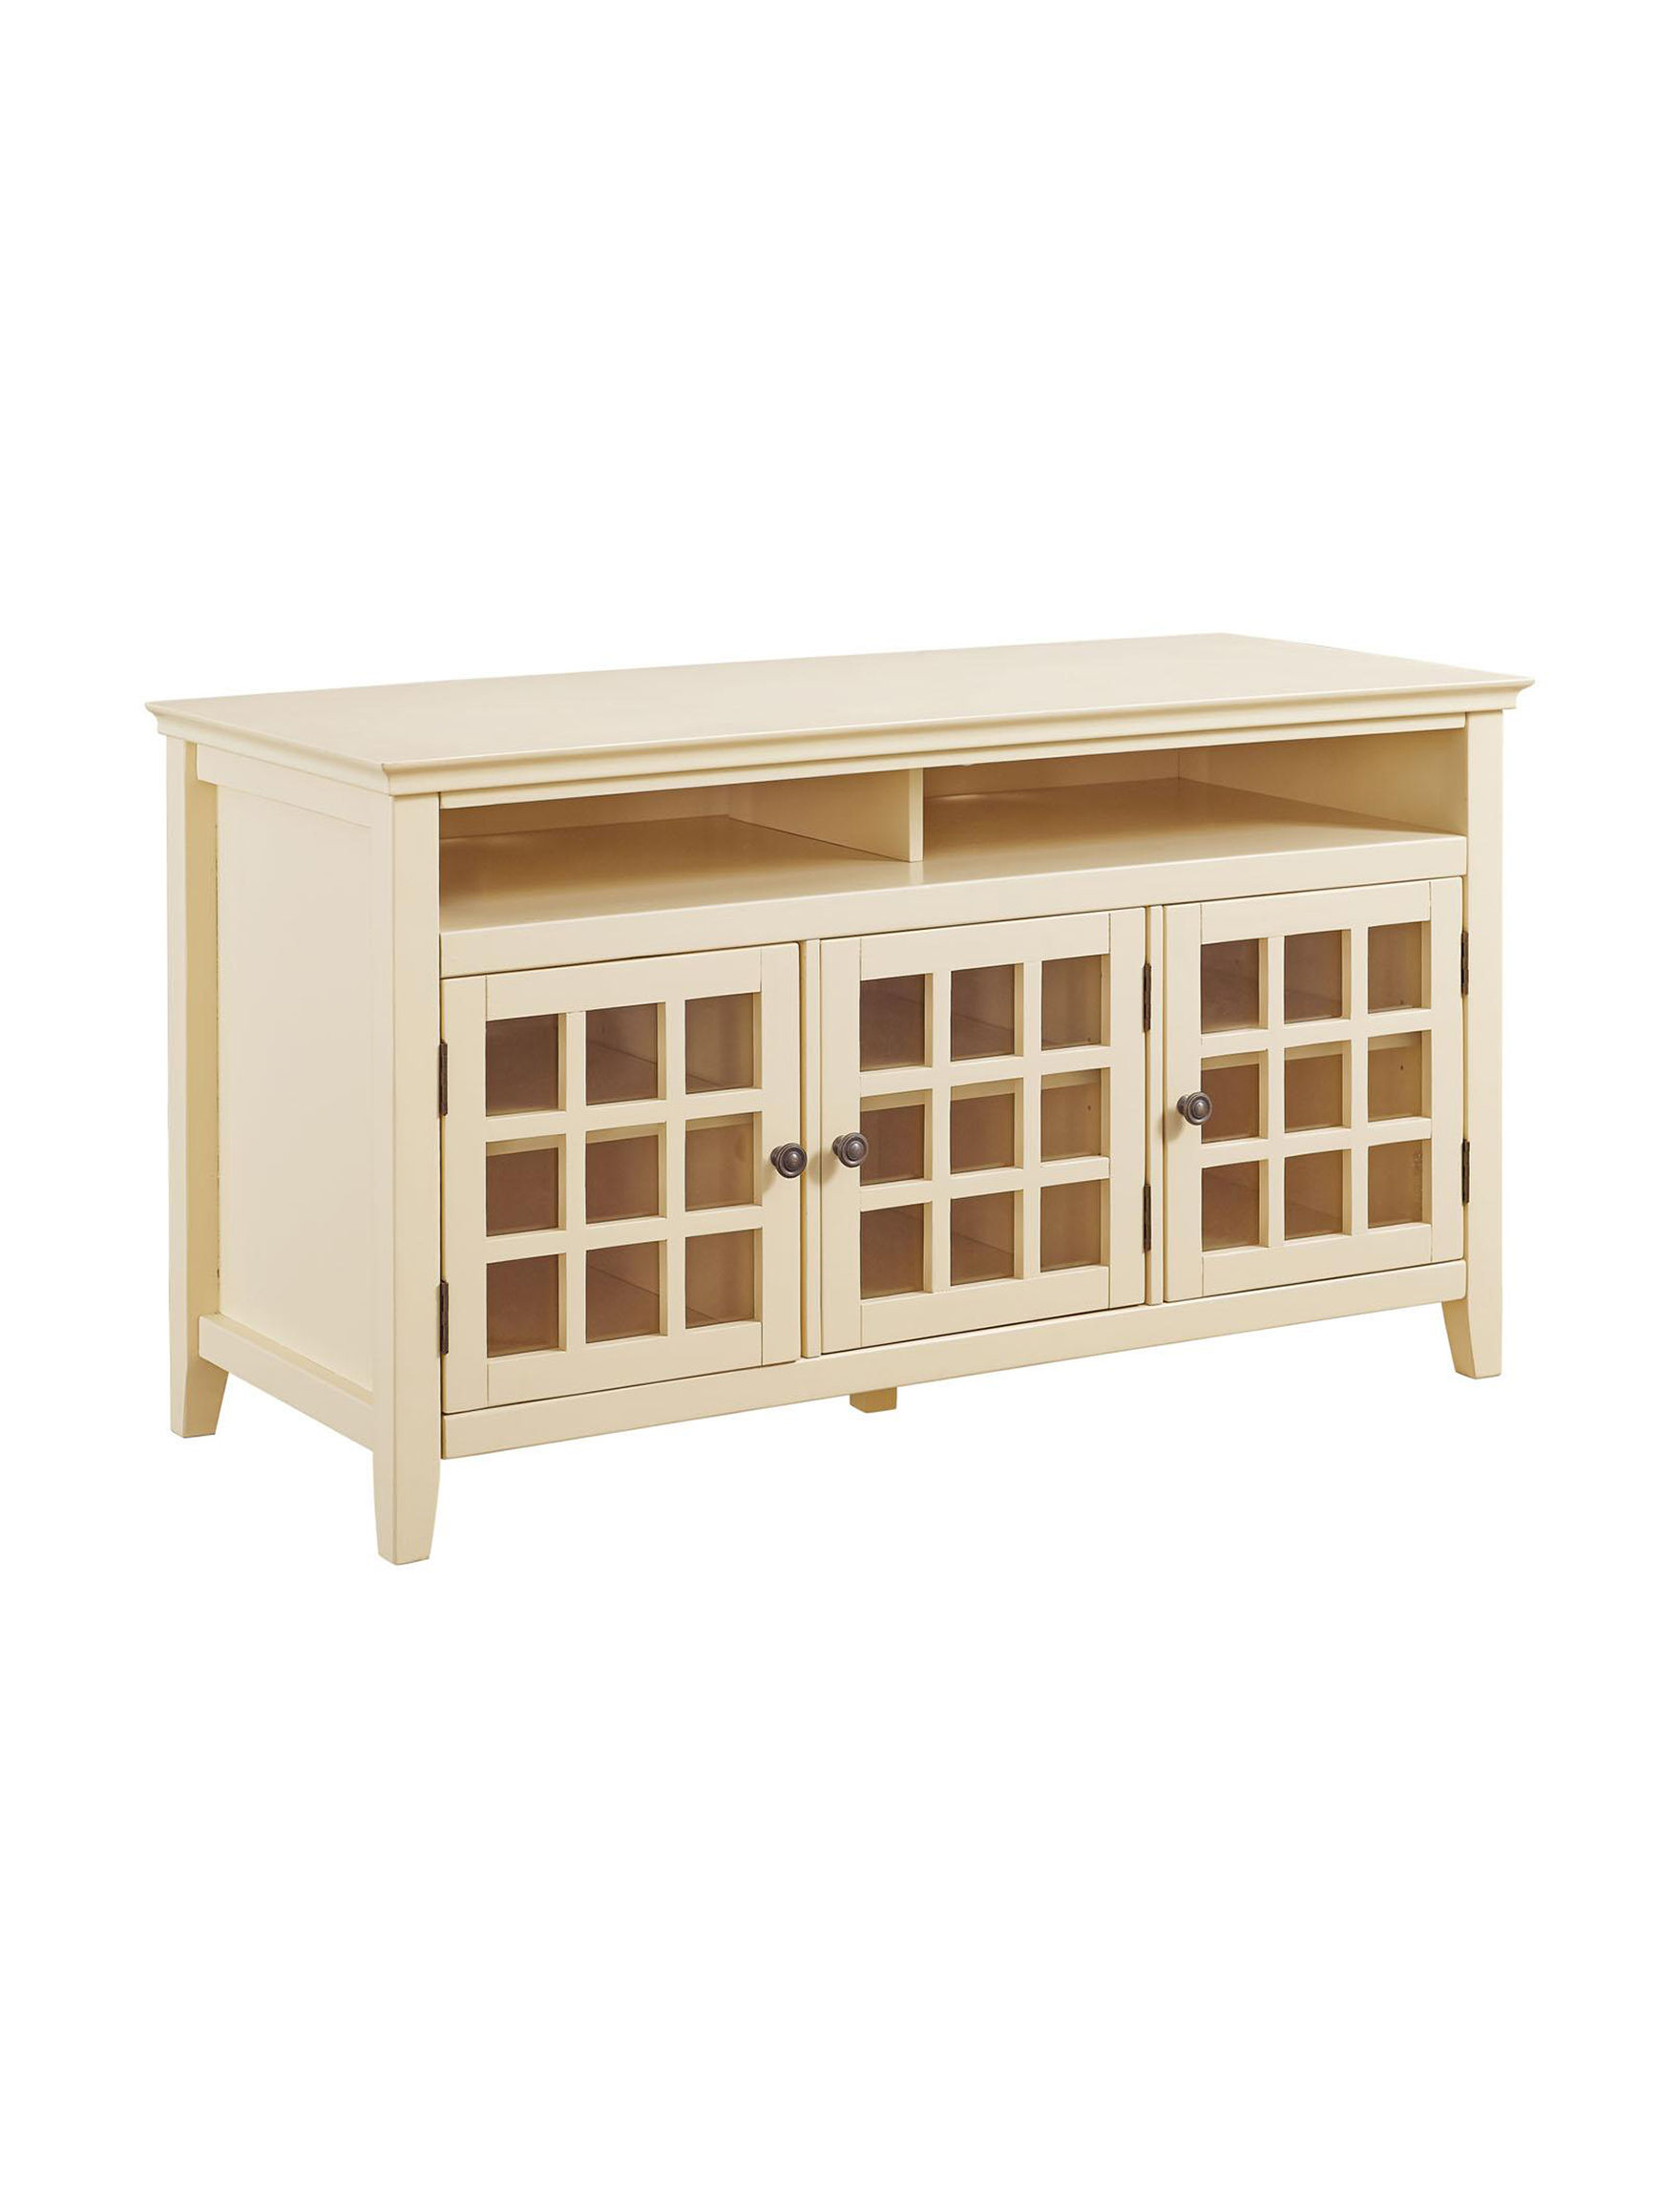 Linon Light Yellow TV Stands & Entertainment Centers Living Room Furniture